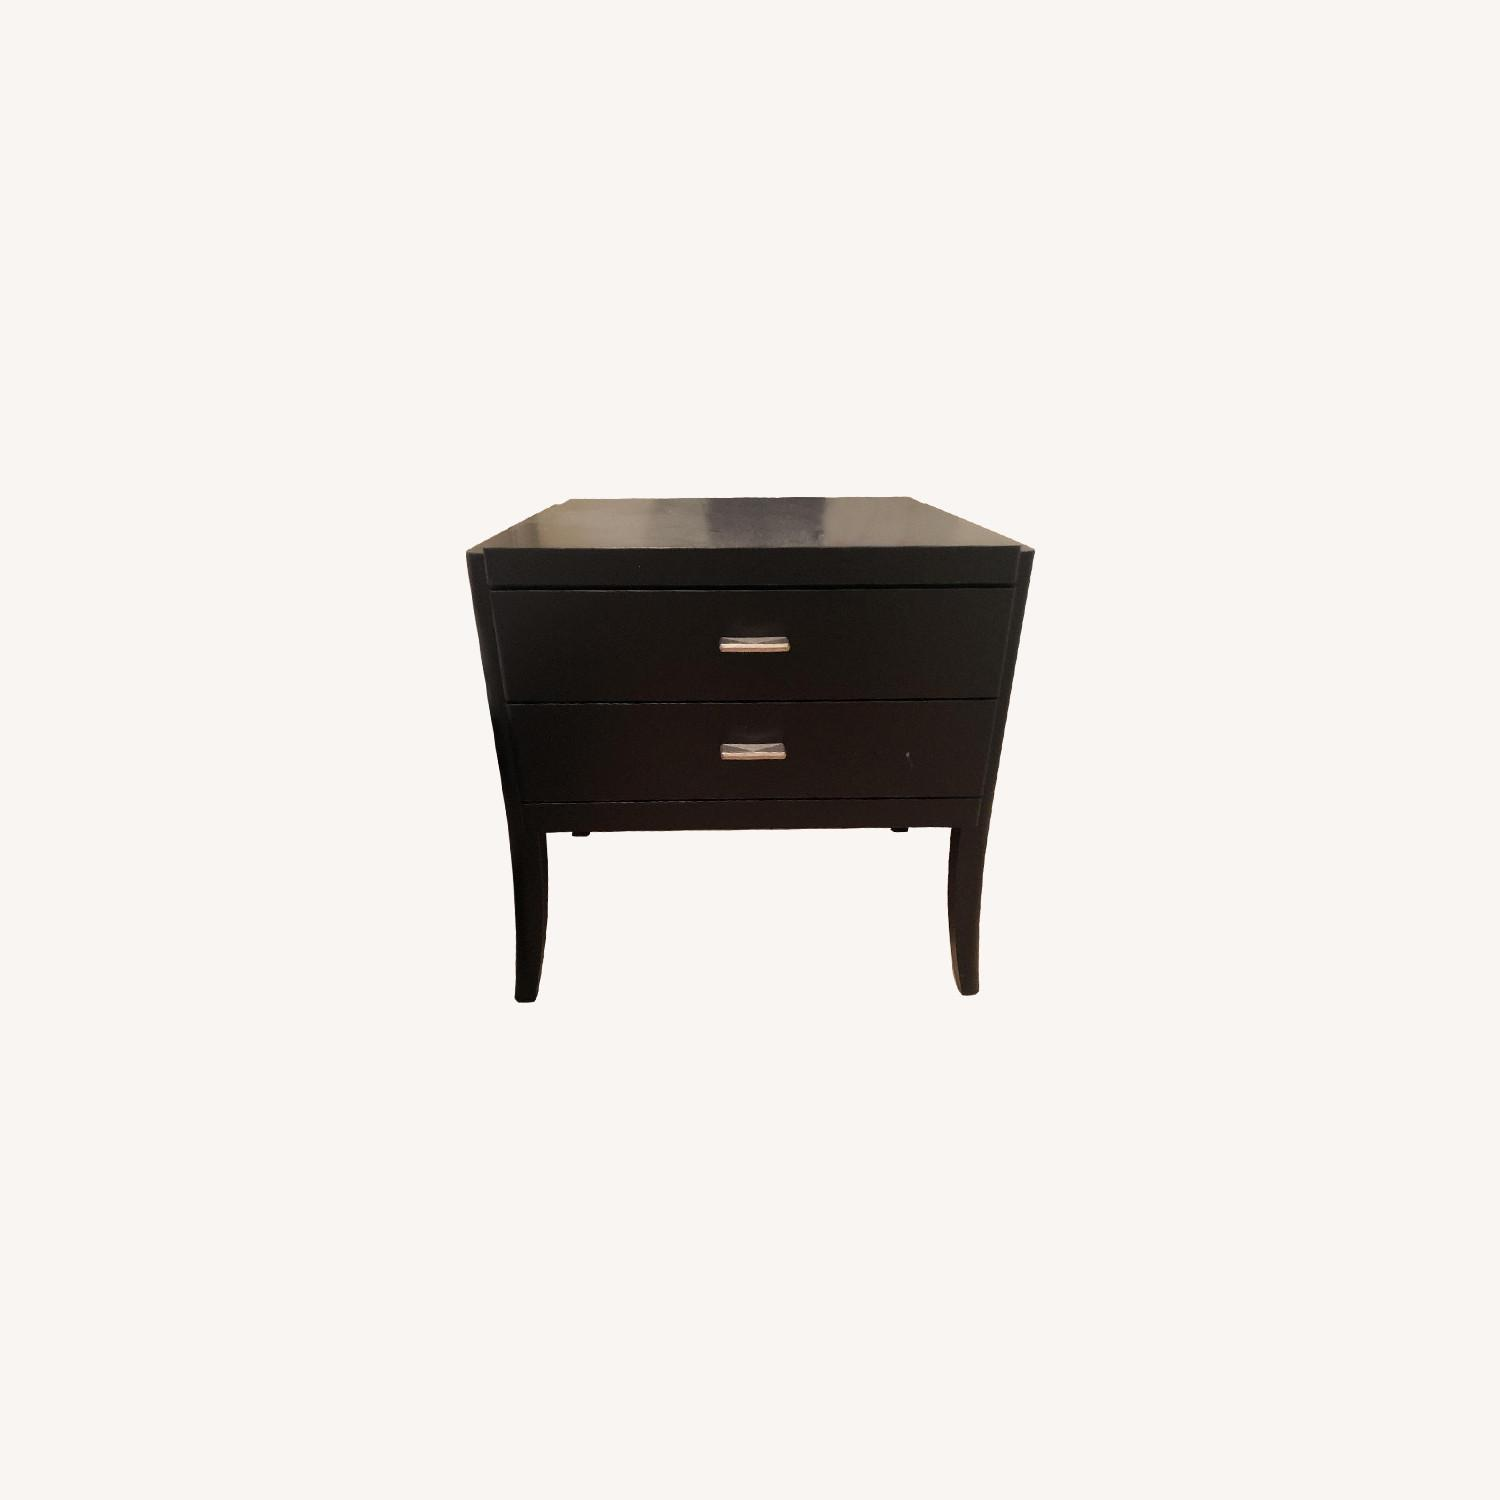 Black Wood Nightstands - image-0